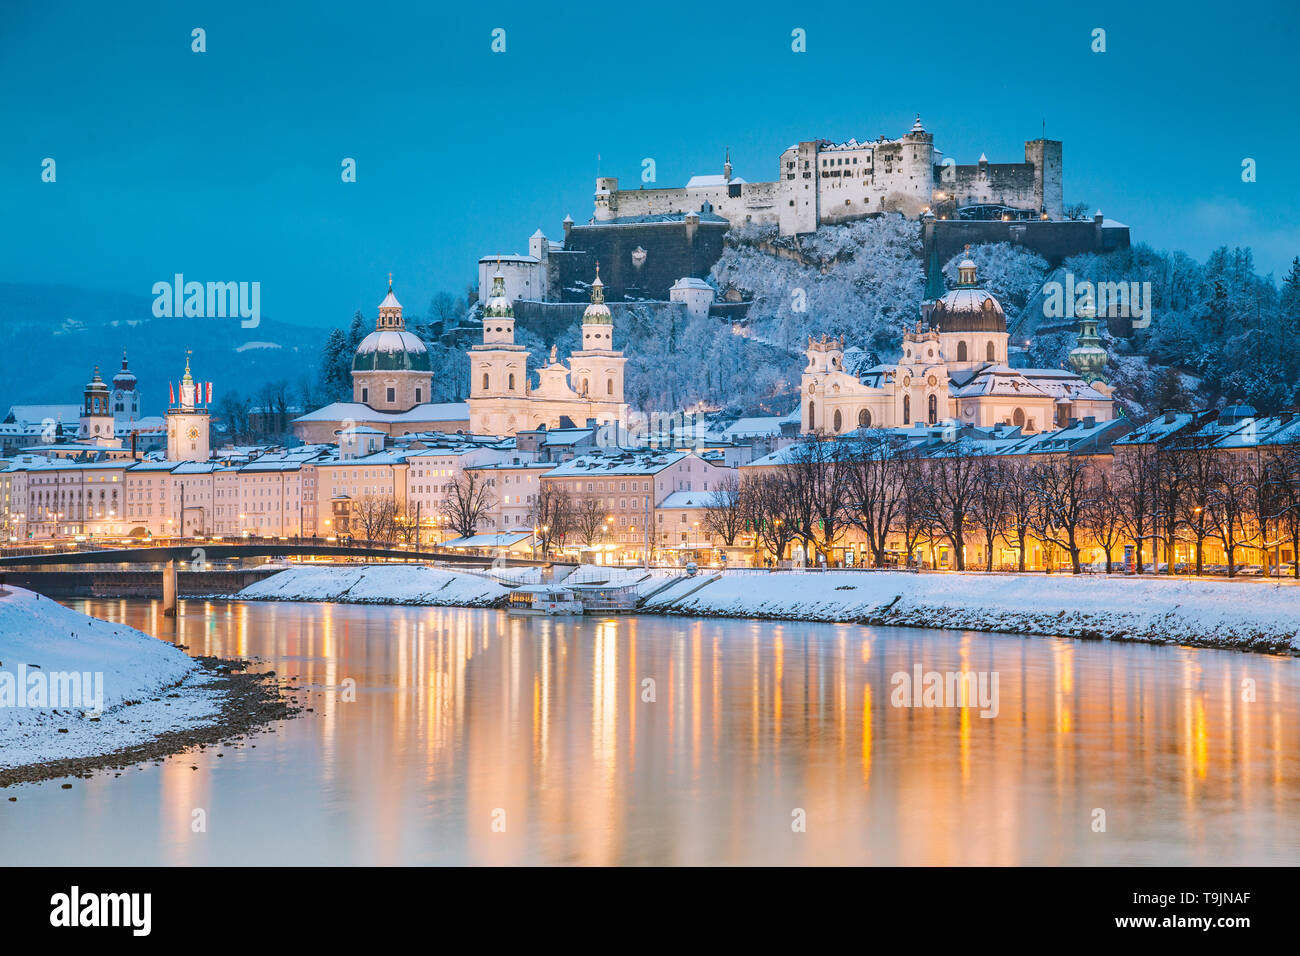 Classic view of the historic city of Salzburg with famous Festung Hohensalzburg and Salzach river illuminated in beautiful twilight during scenic Chri - Stock Image